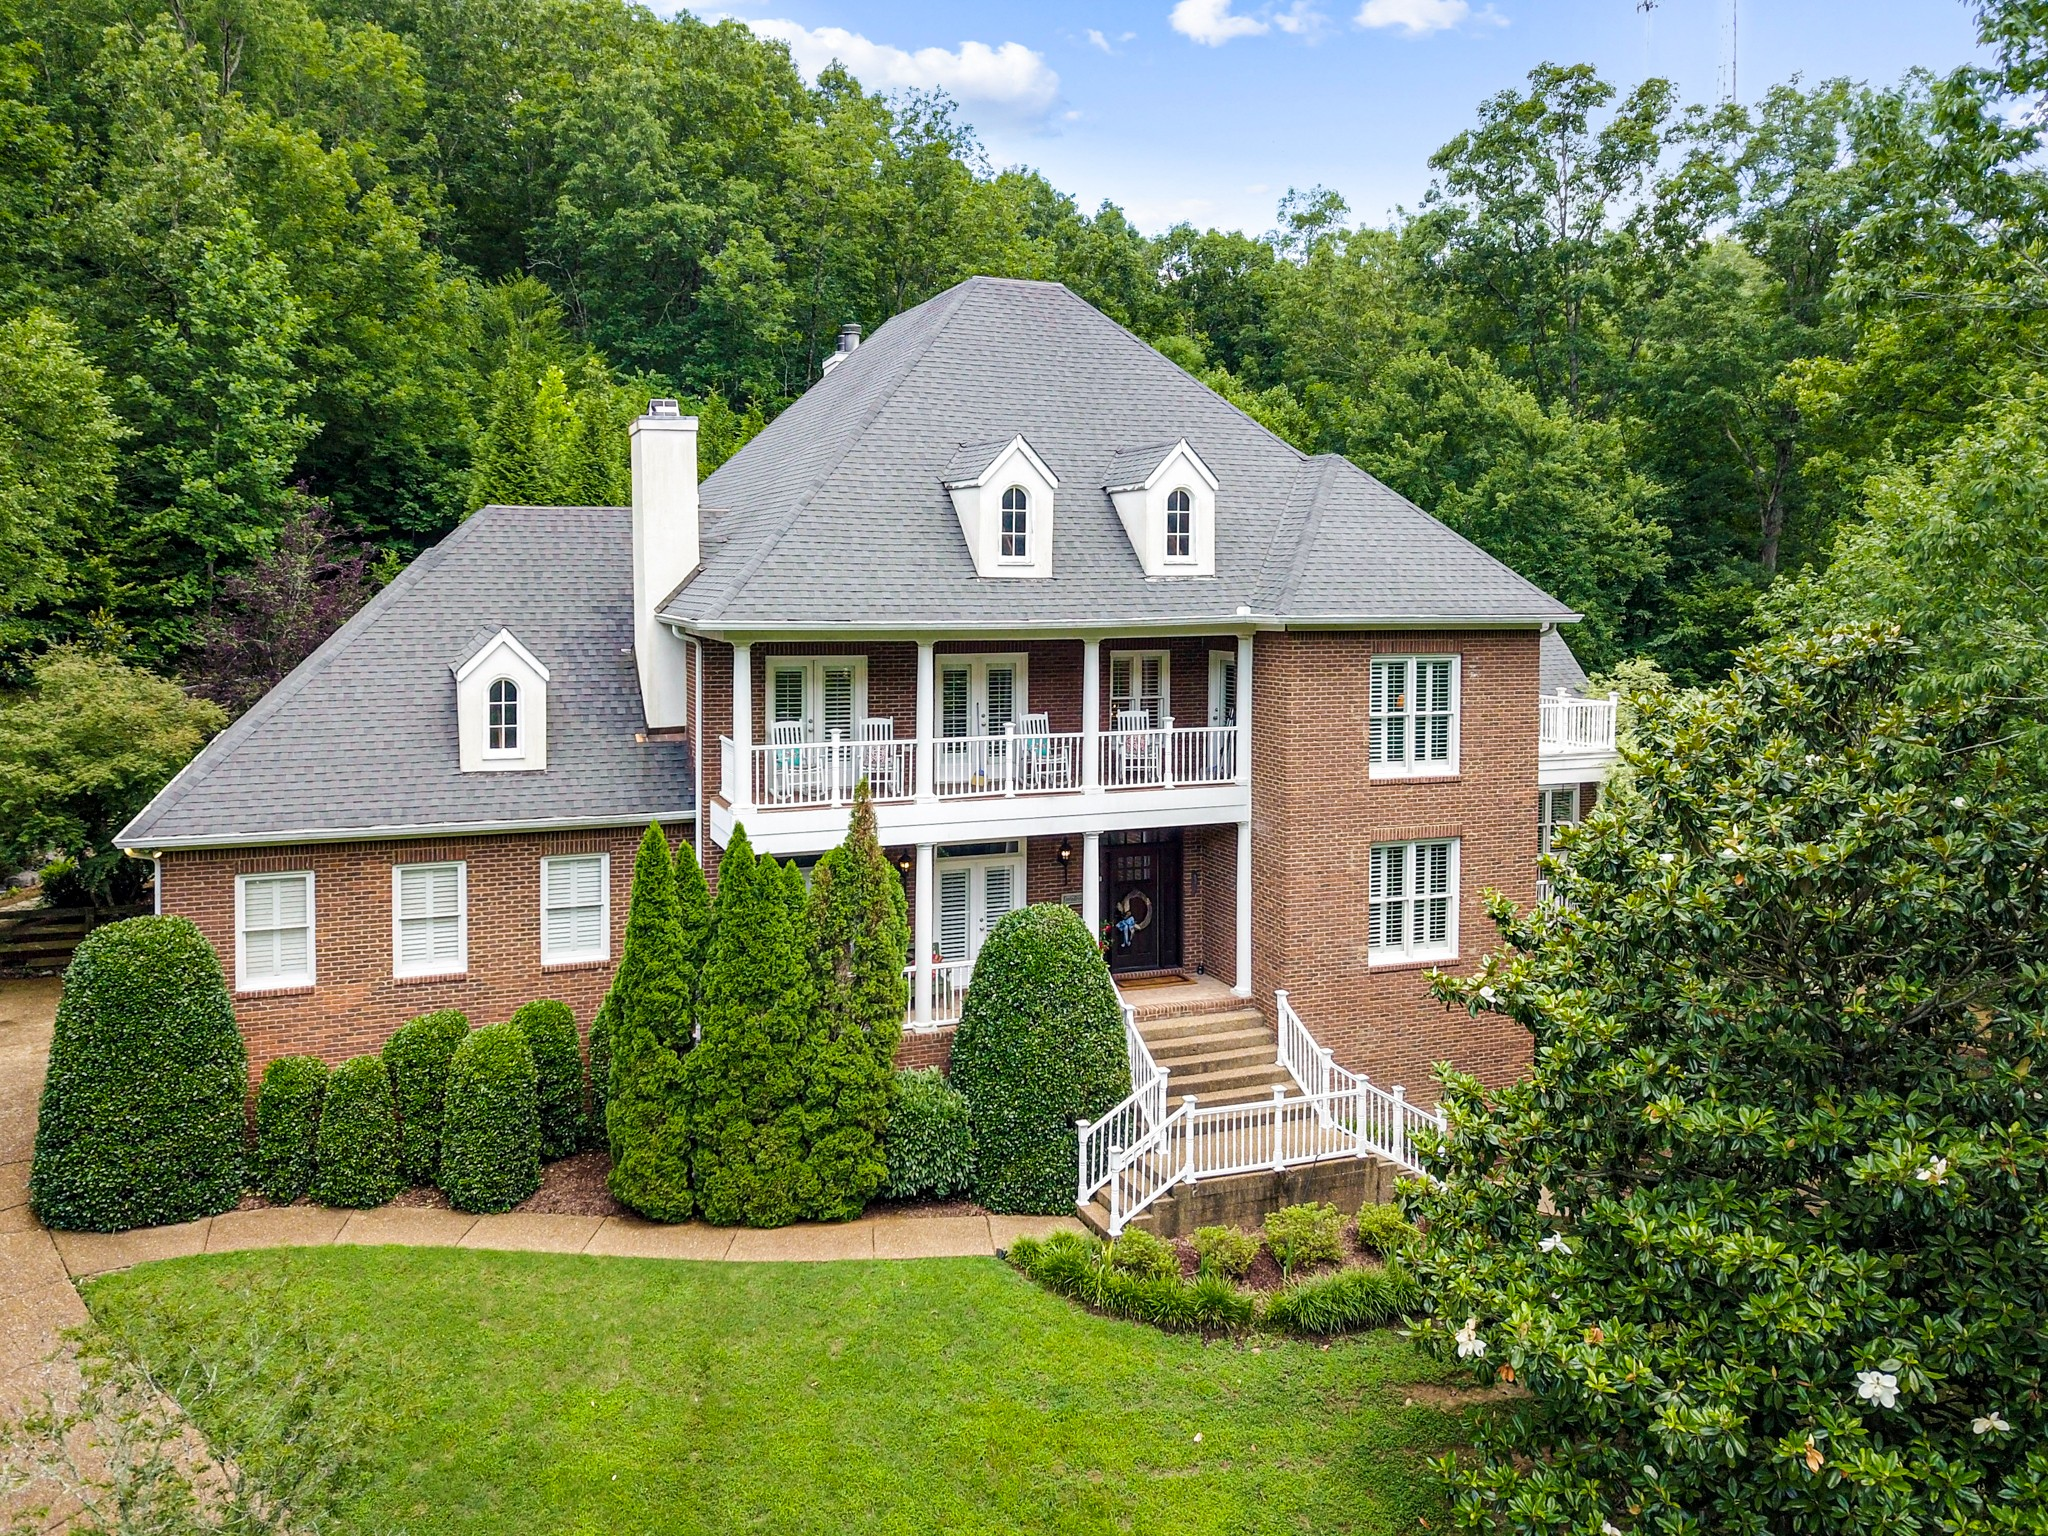 Still showing!!! Serene setting on 5 acres with great entertaining spaces, master on the main with gorgeous updated bathroom, a new stunning kitchen (two dishwahers, two sinks, massive quartzite island)! Private office spaces, huge basement with game room, pub, media room and full bath, garage for 4 cars and a boat plus more unfinished space, screened porch, sunroom, balconies, speakers throughout, gorgeous backyard, loads of wildlife and more! Just 10 minutes to Ensworth High School